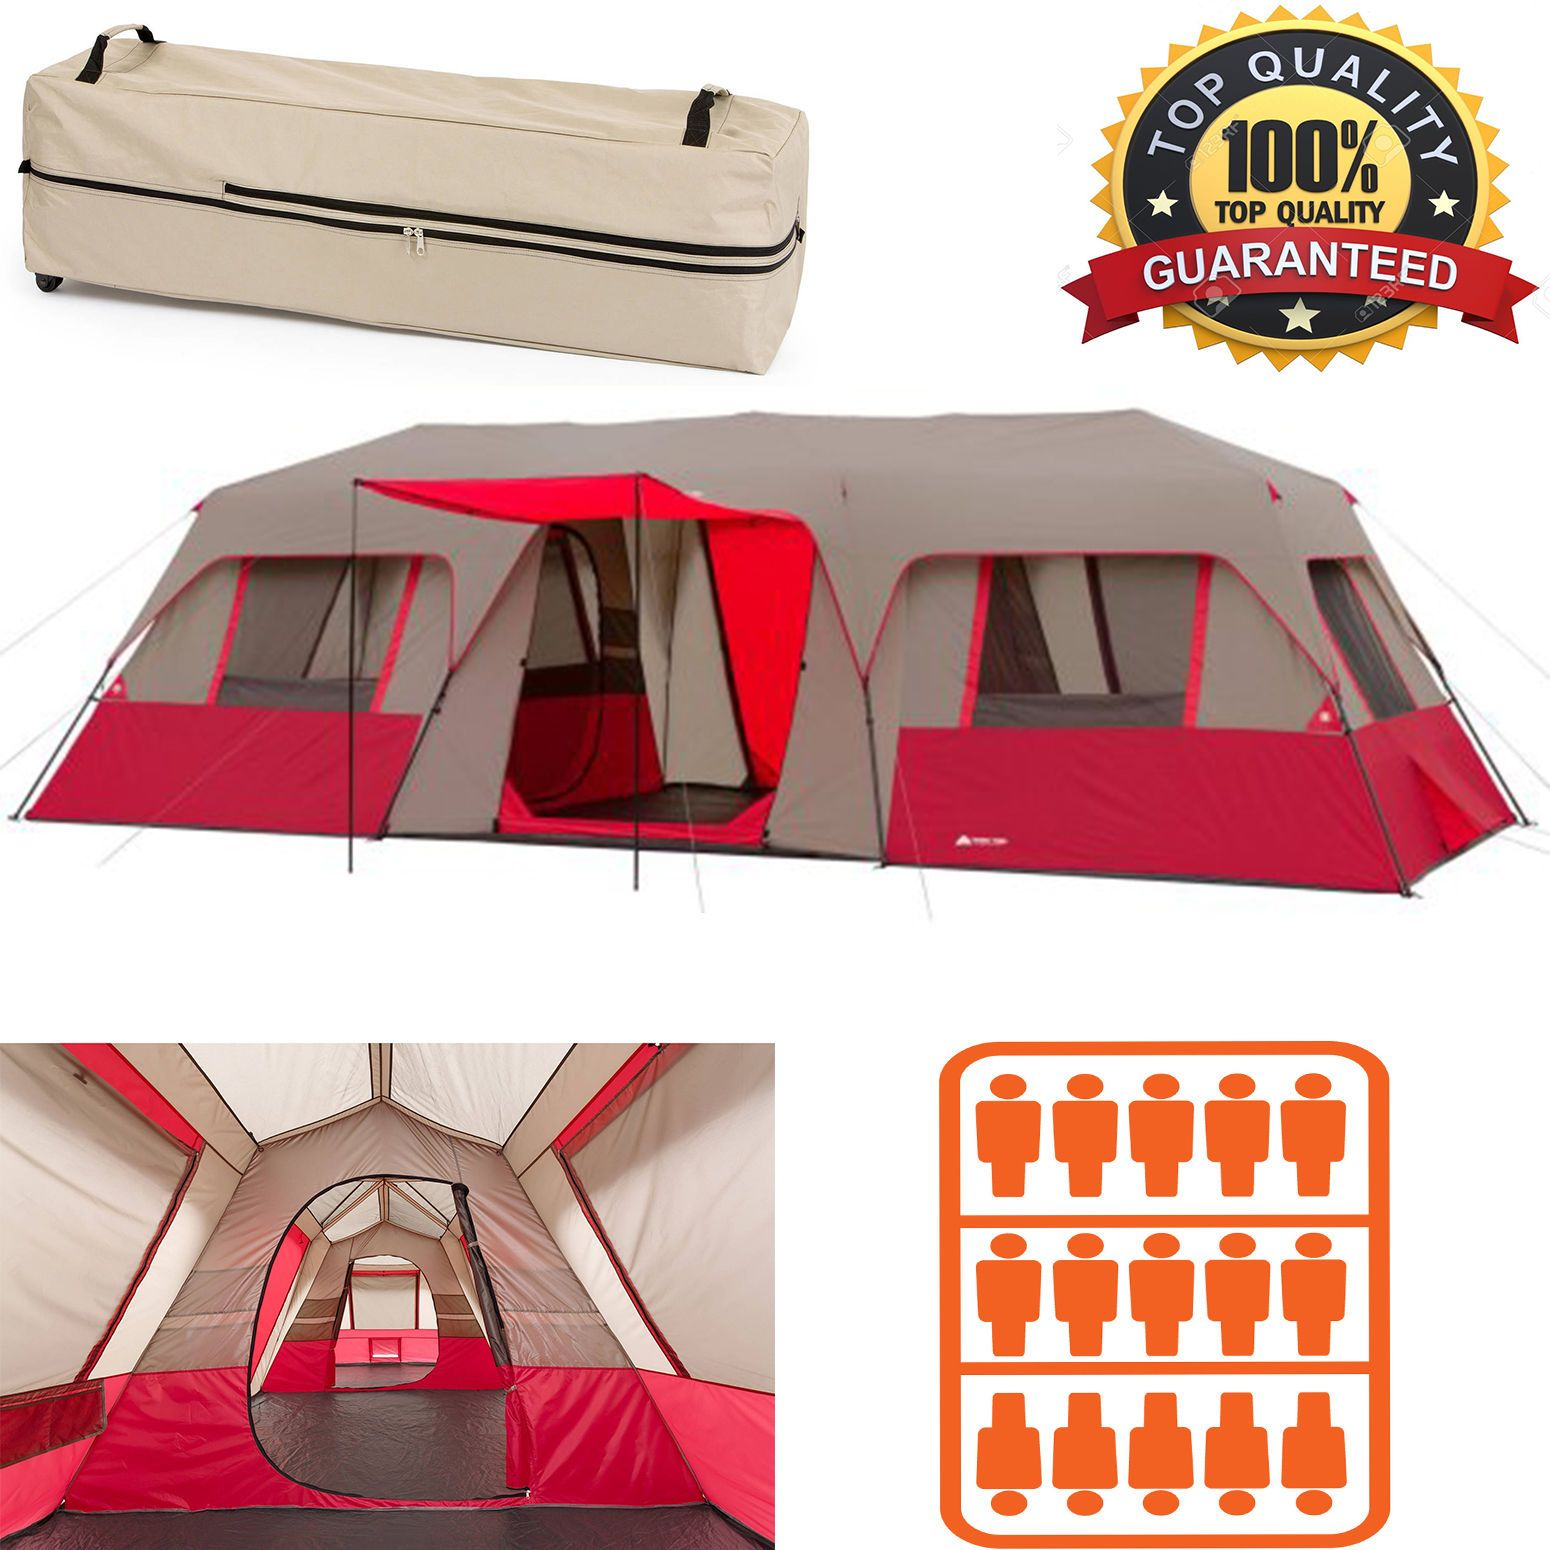 Ozark Trail 15 Person Instant Cabin Large Tent C&ing Split Plan Family 3-Room  sc 1 st  Pinterest : 15 person tent - memphite.com